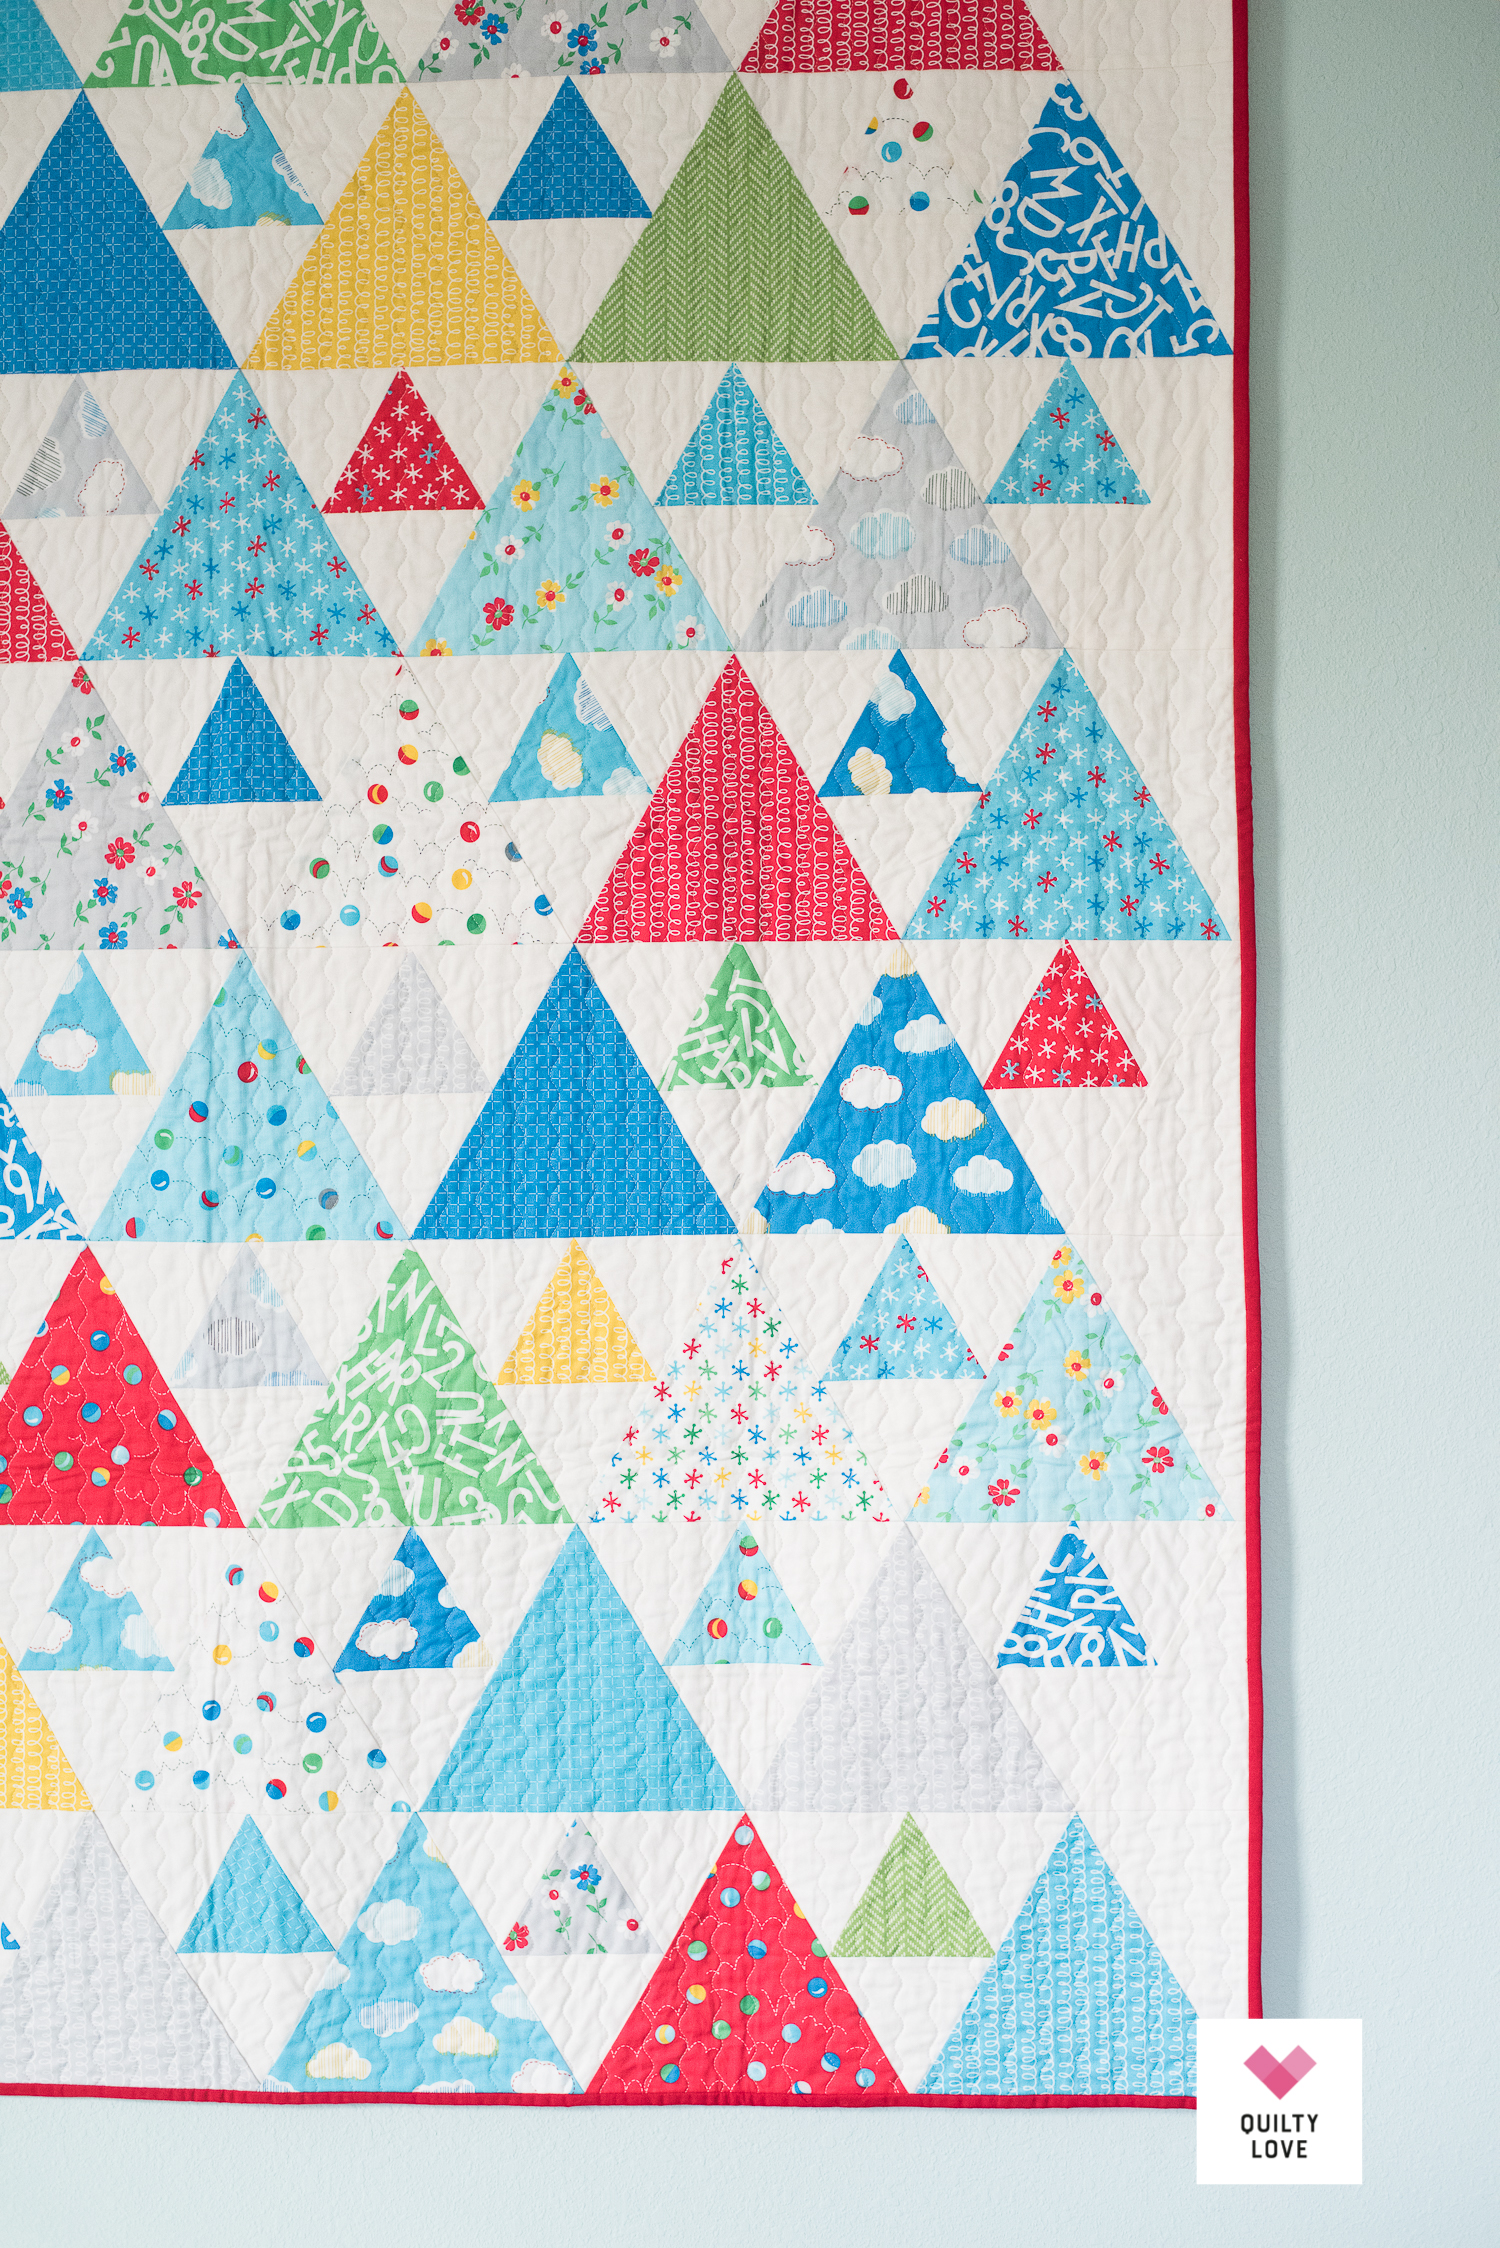 Bounce Triangle Peaks by QuiltyLove